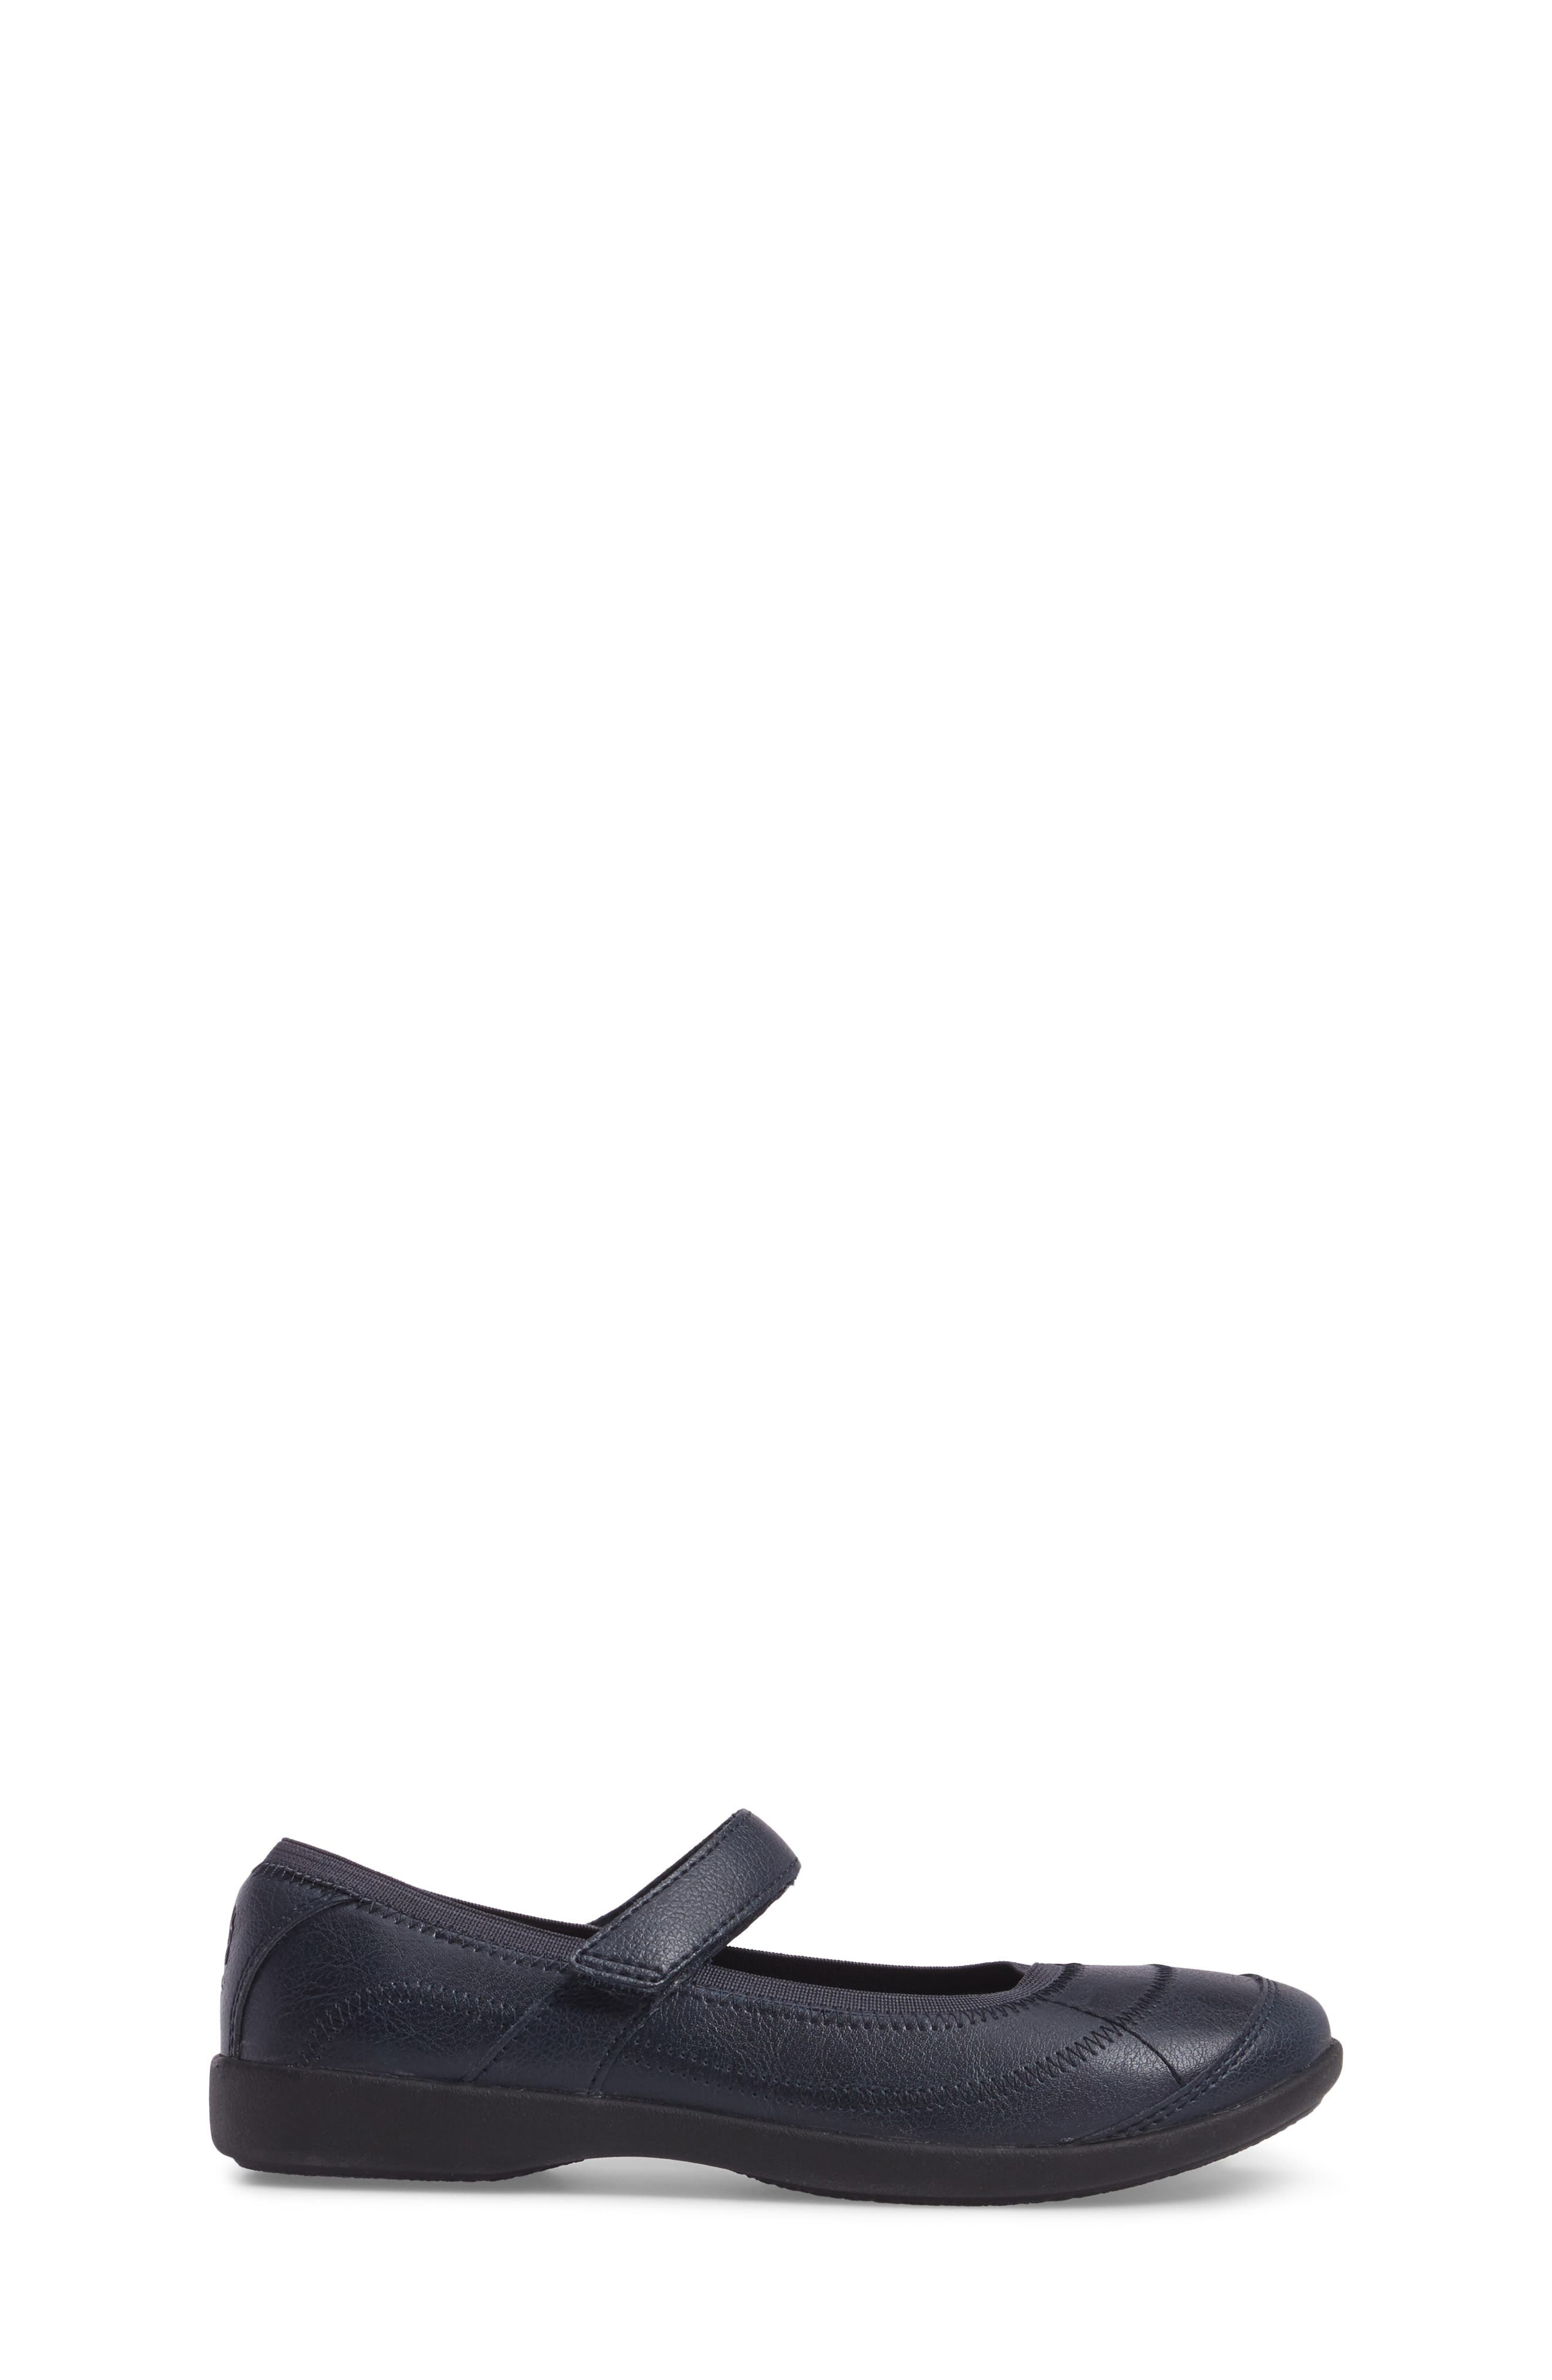 HUSH PUPPIES<SUP>®</SUP>, Reese Mary Jane Flat, Alternate thumbnail 3, color, NAVY LEATHER